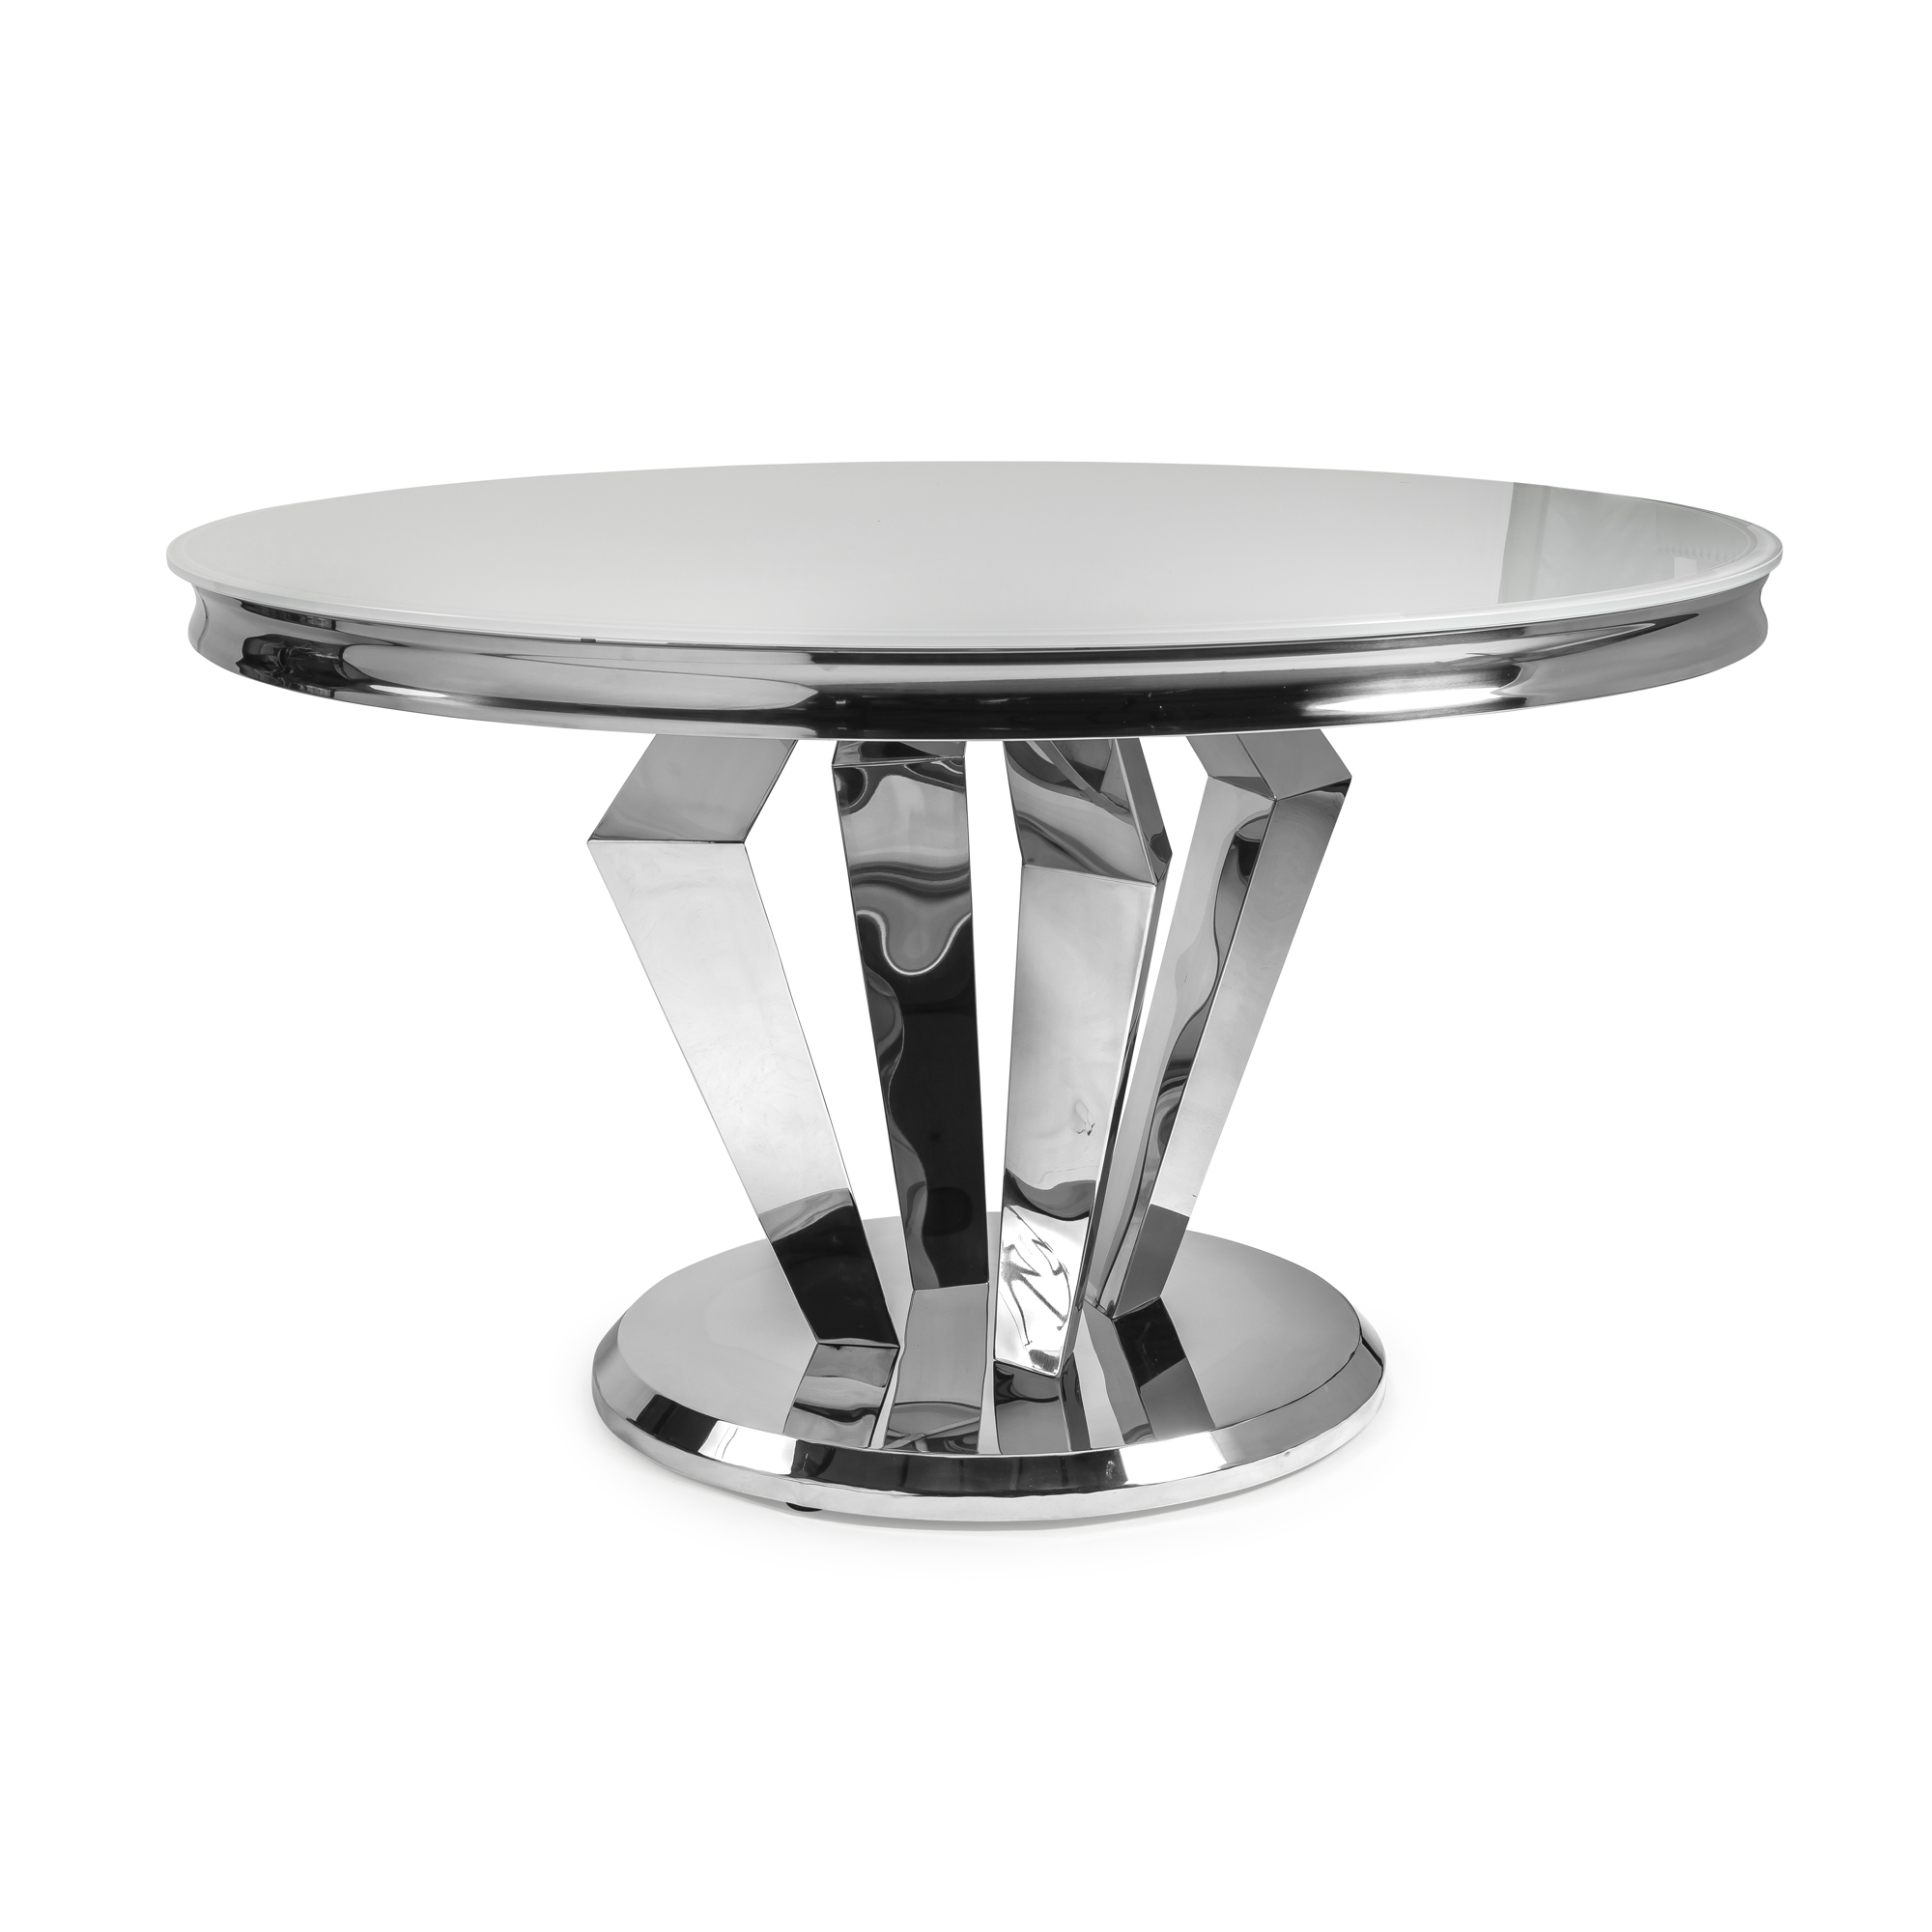 1.3M Circular Stainless Steel Dining Table with White Glass Top